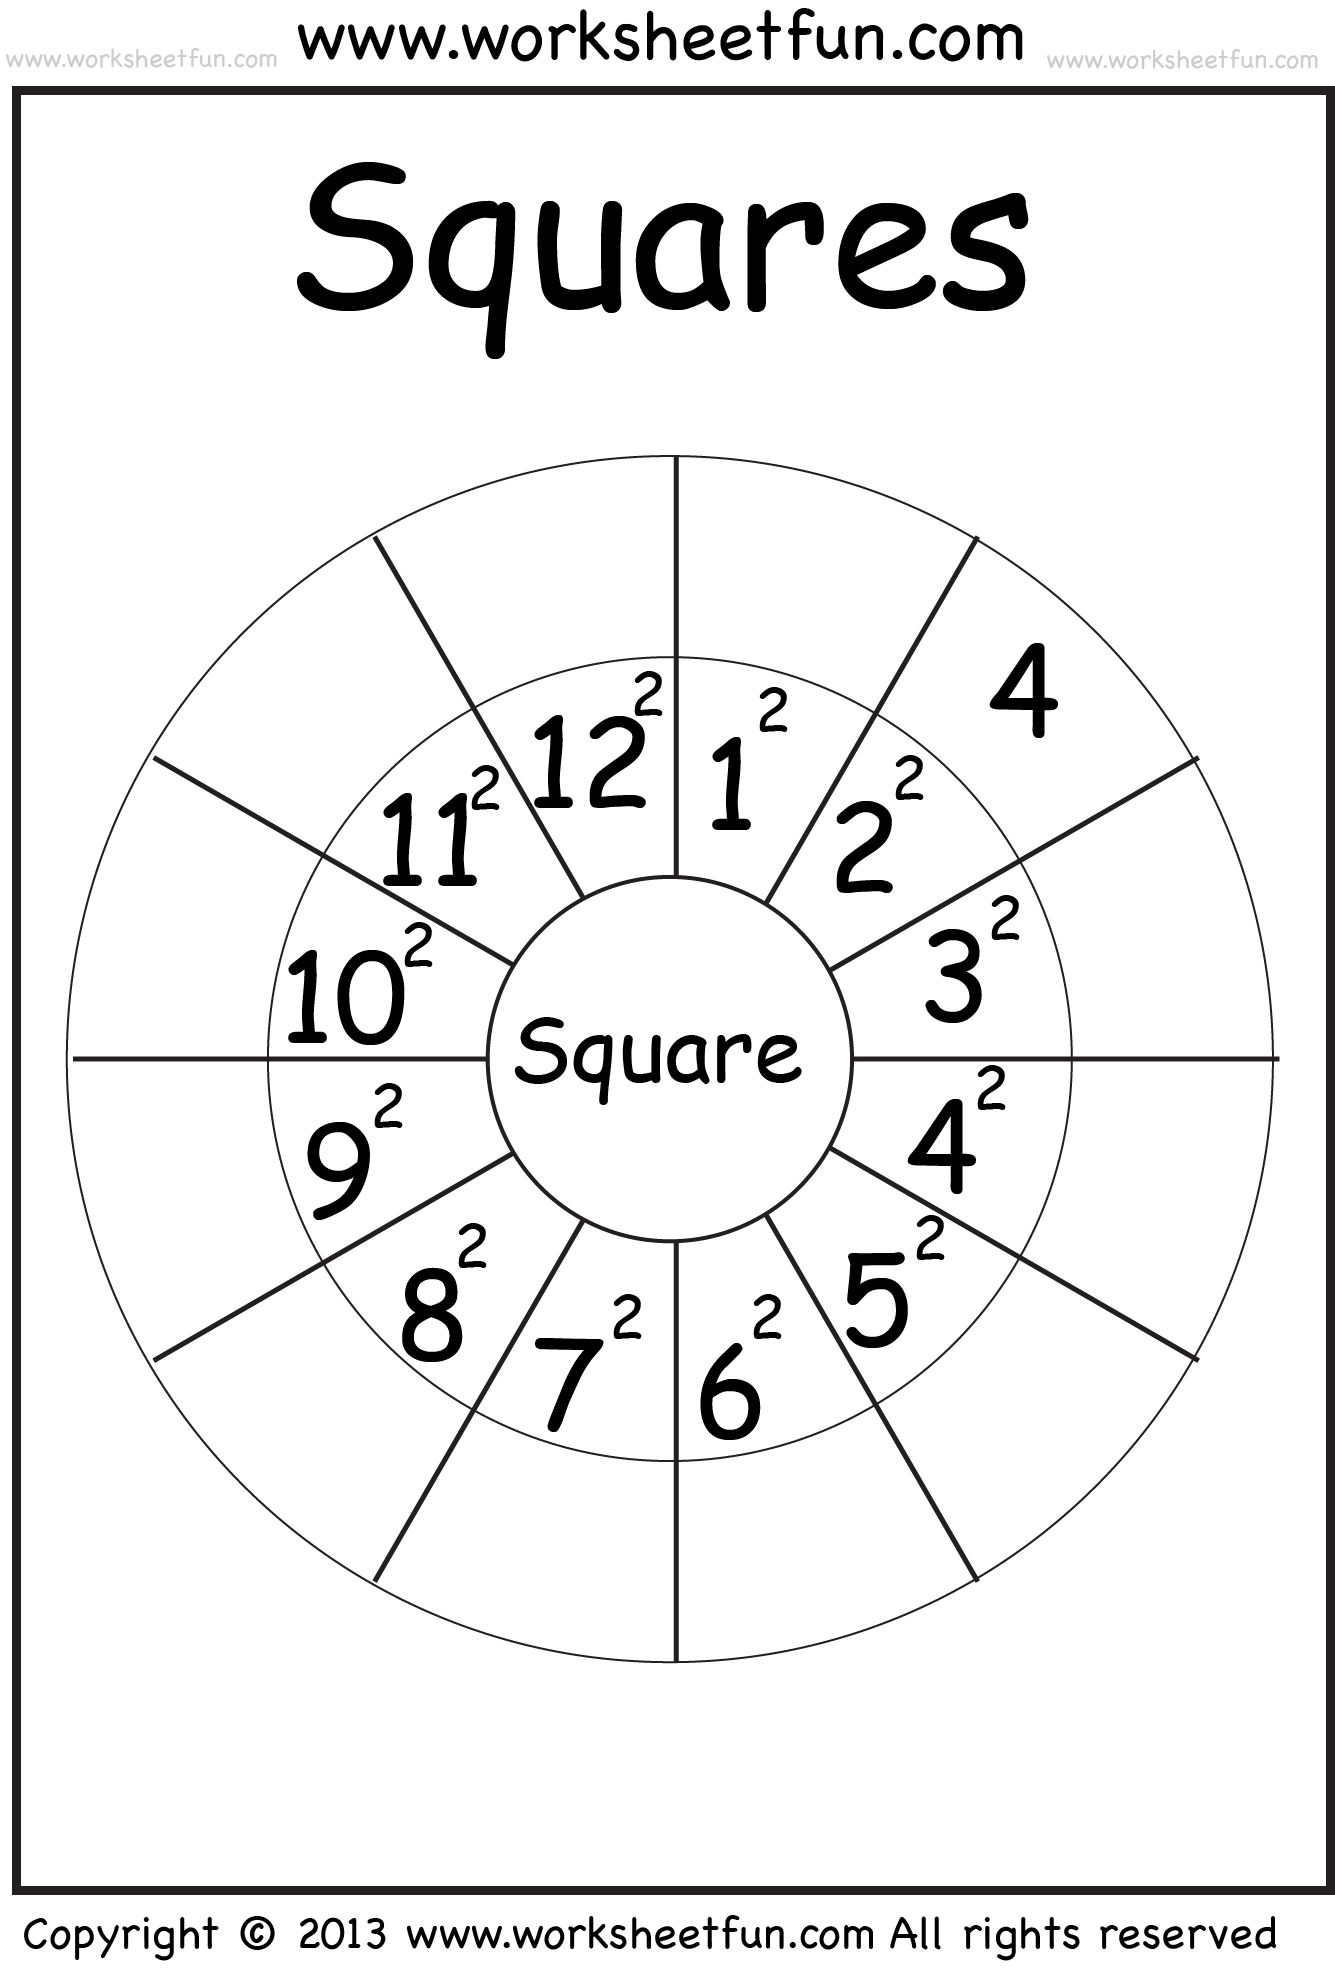 worksheet Squares And Square Roots Worksheets perfect squares classical conversations pinterest math squares